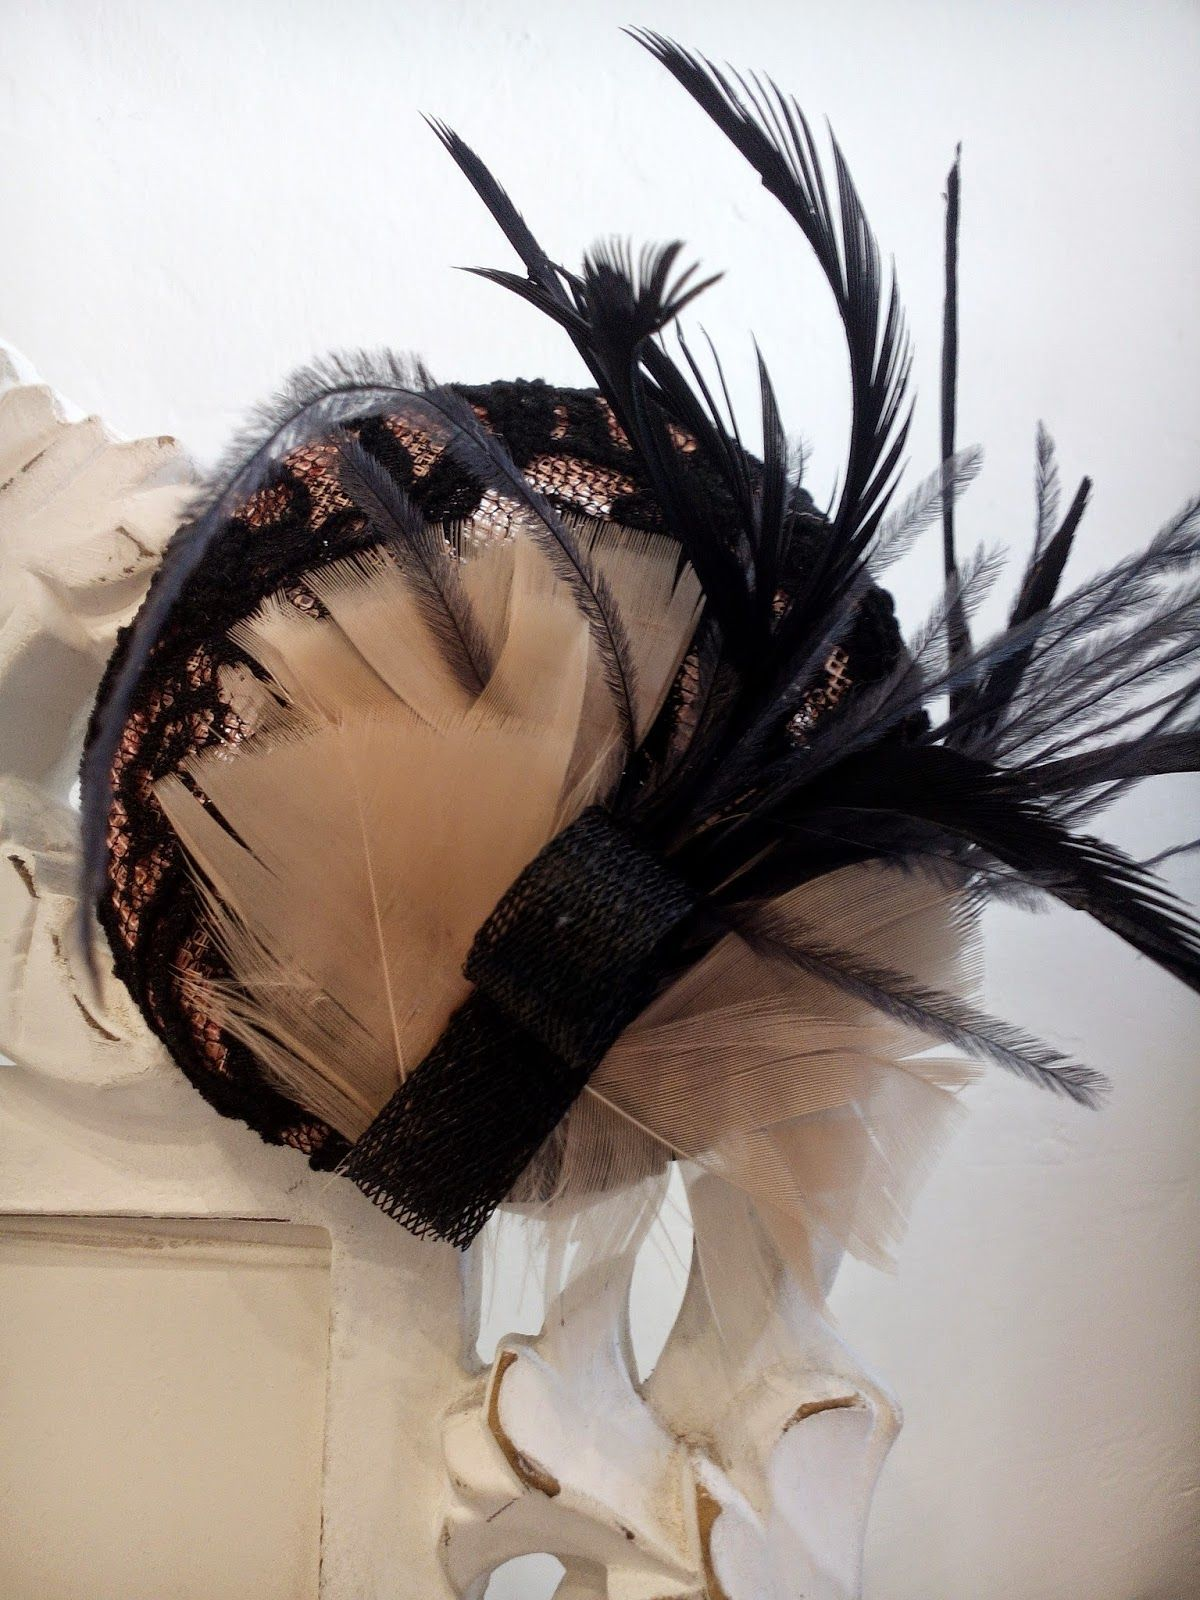 Tocado con base en tono nude melocotón forrada en chantitty negro, con detalle de plumas en ambos colores // Headdress based on nude peach tone black chantitty lined with feather detail in both colors